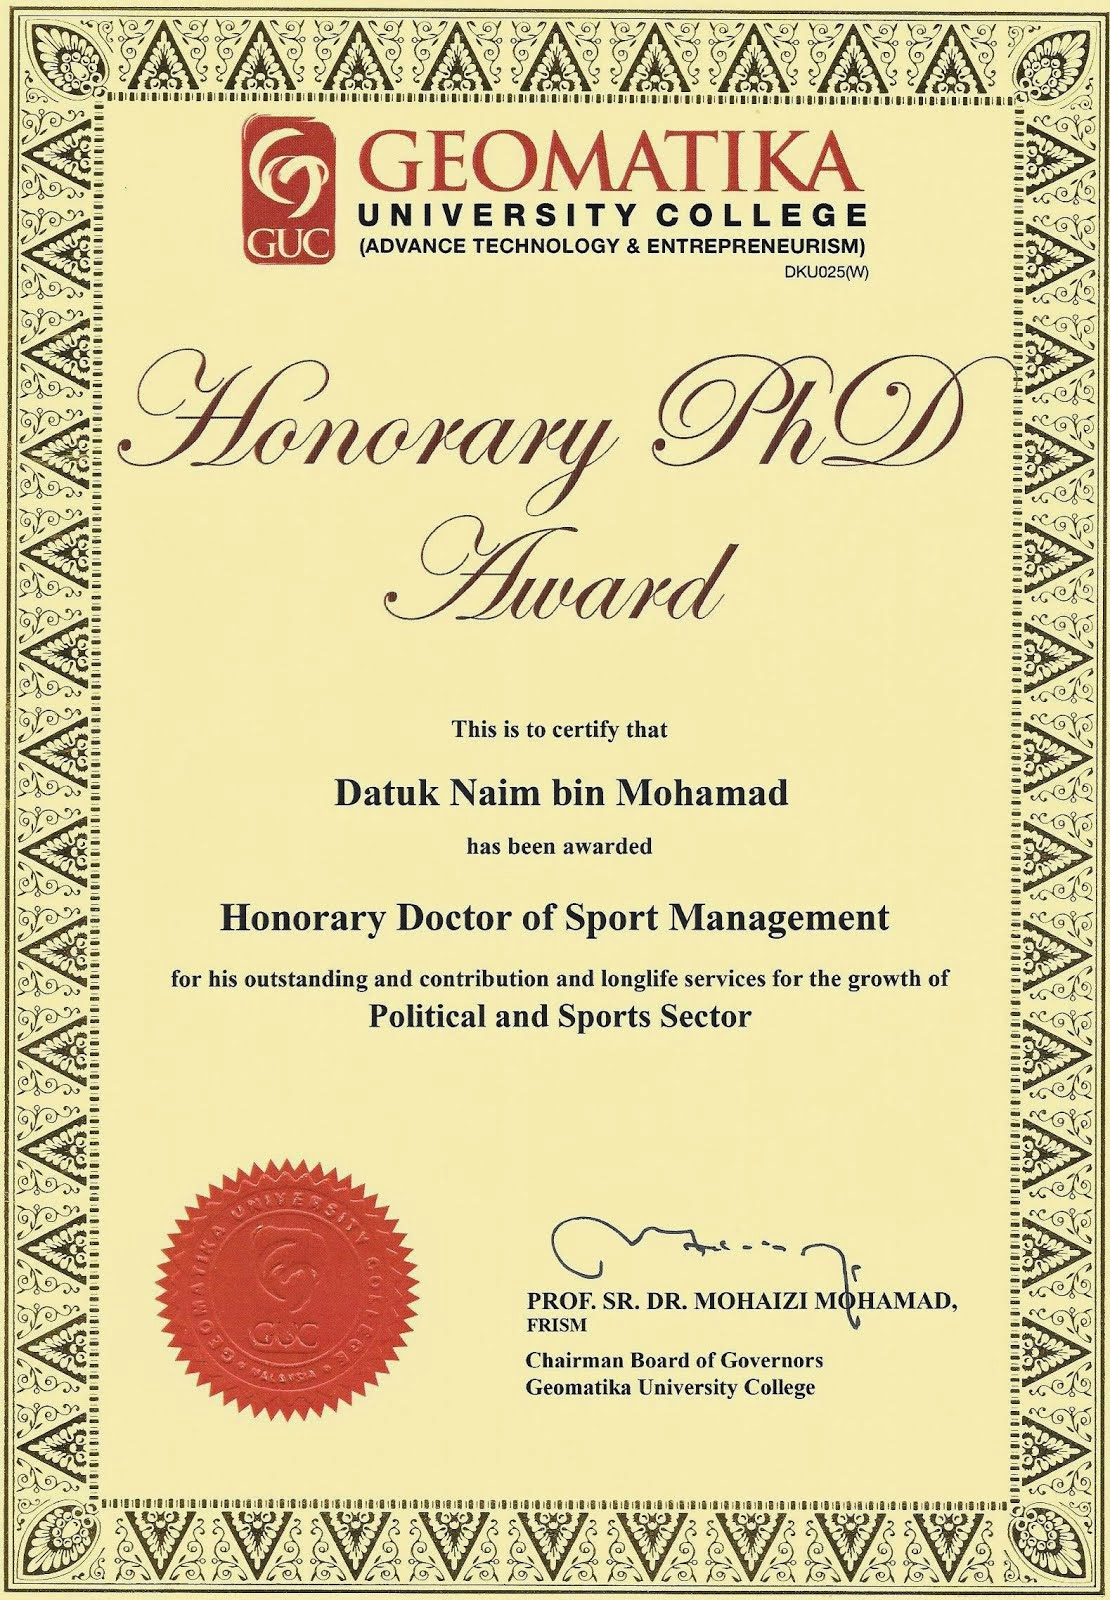 Honorary PhD Award